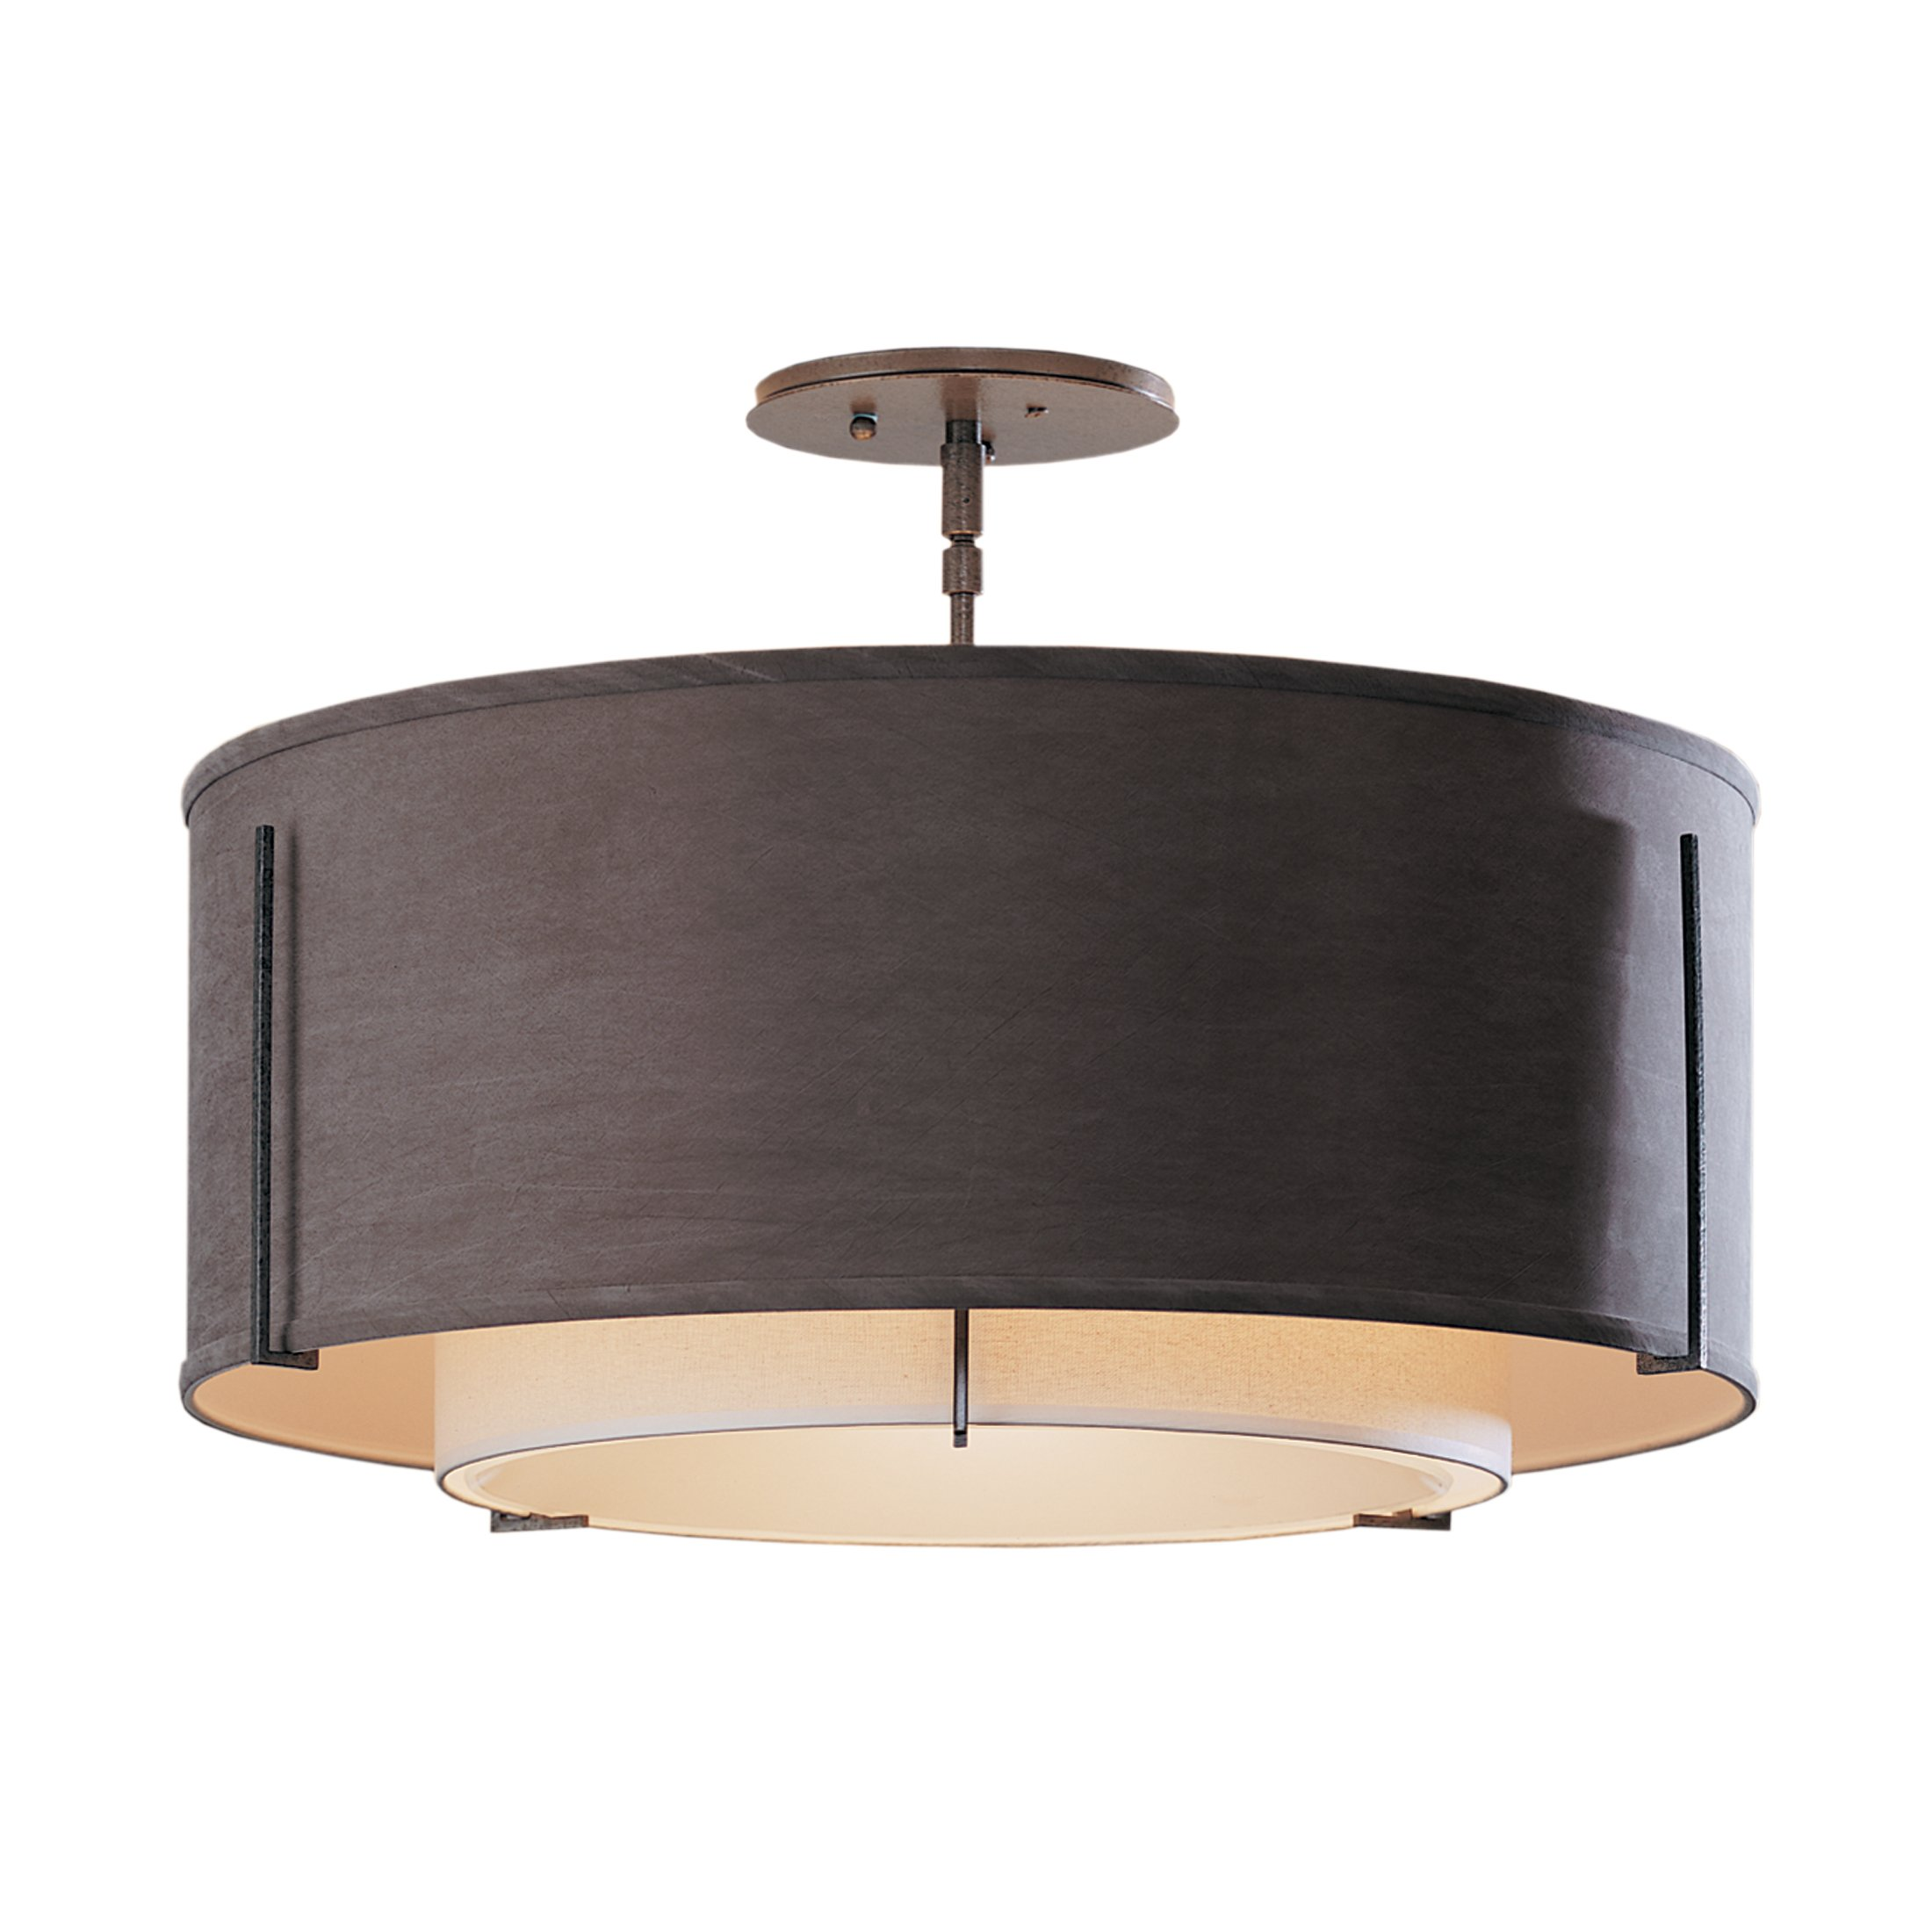 Hubbardton Forge 126503-1079 Exos Double Shade Semi-Flush, Bronze Finish, Natural Anna Inner and Eclipse Outer by Hubbardton Forge